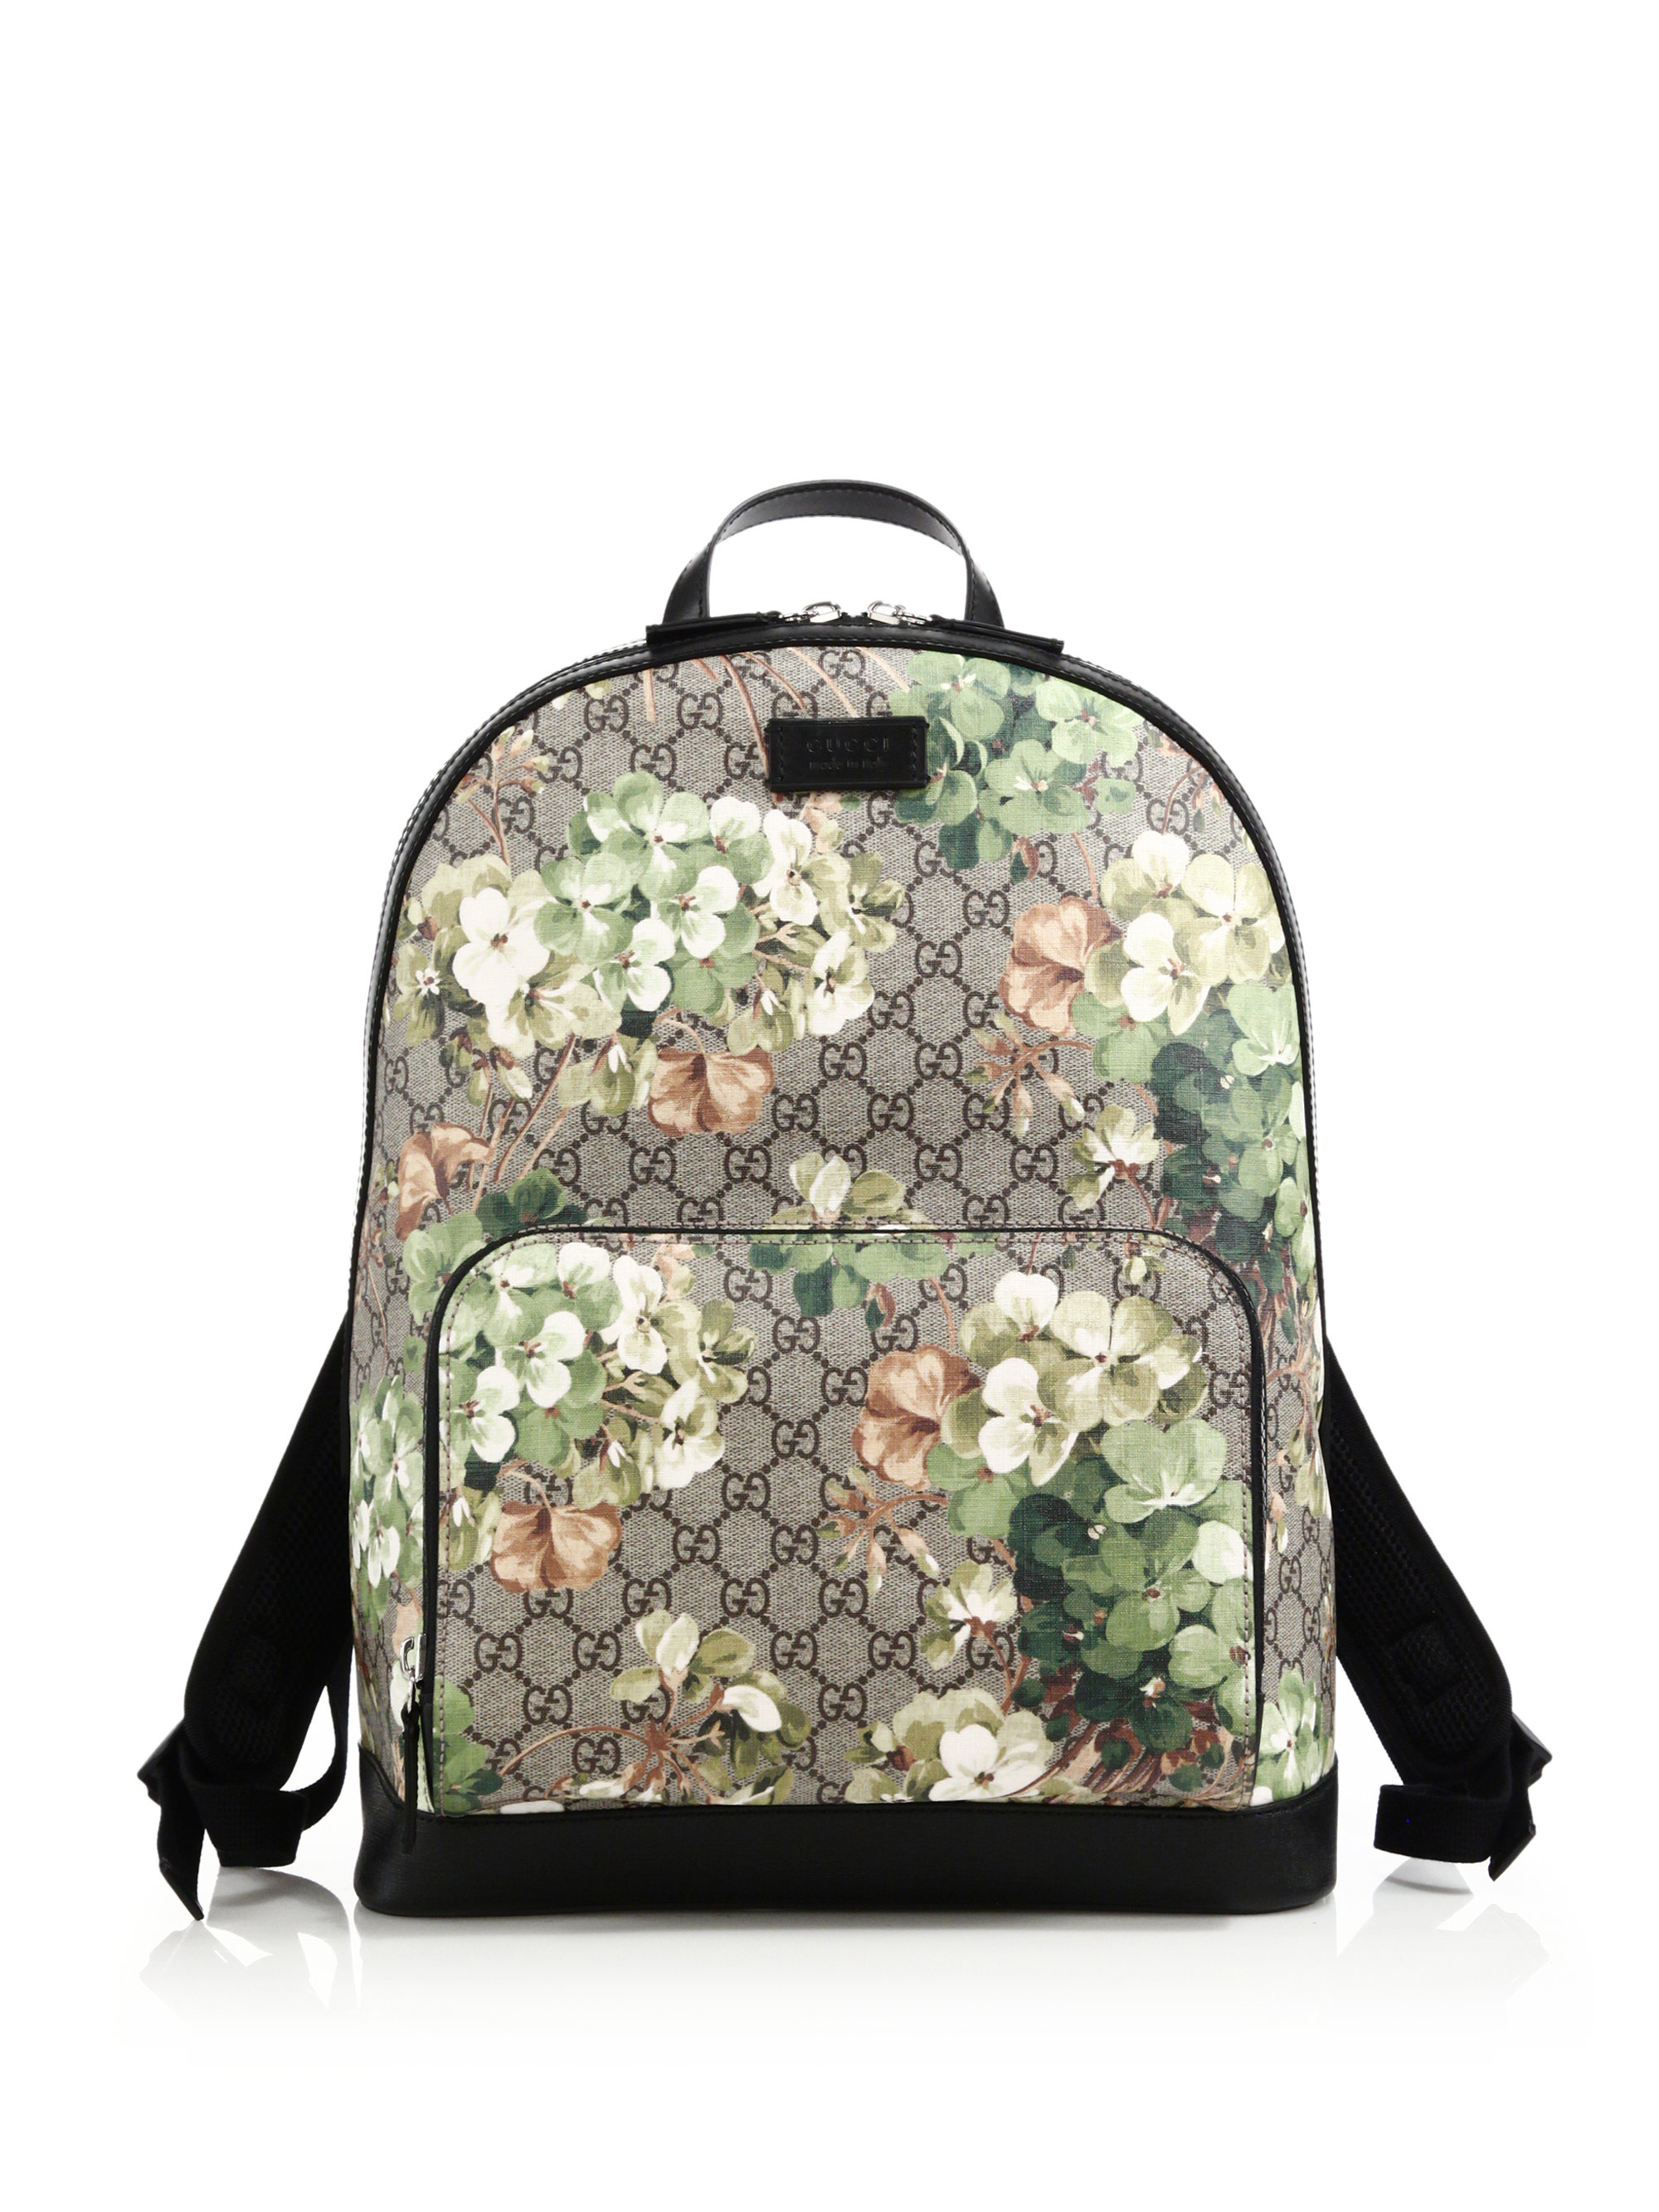 a354debfcf35 Gucci Blooms Gg Supreme Canvas Backpack for Men - Lyst